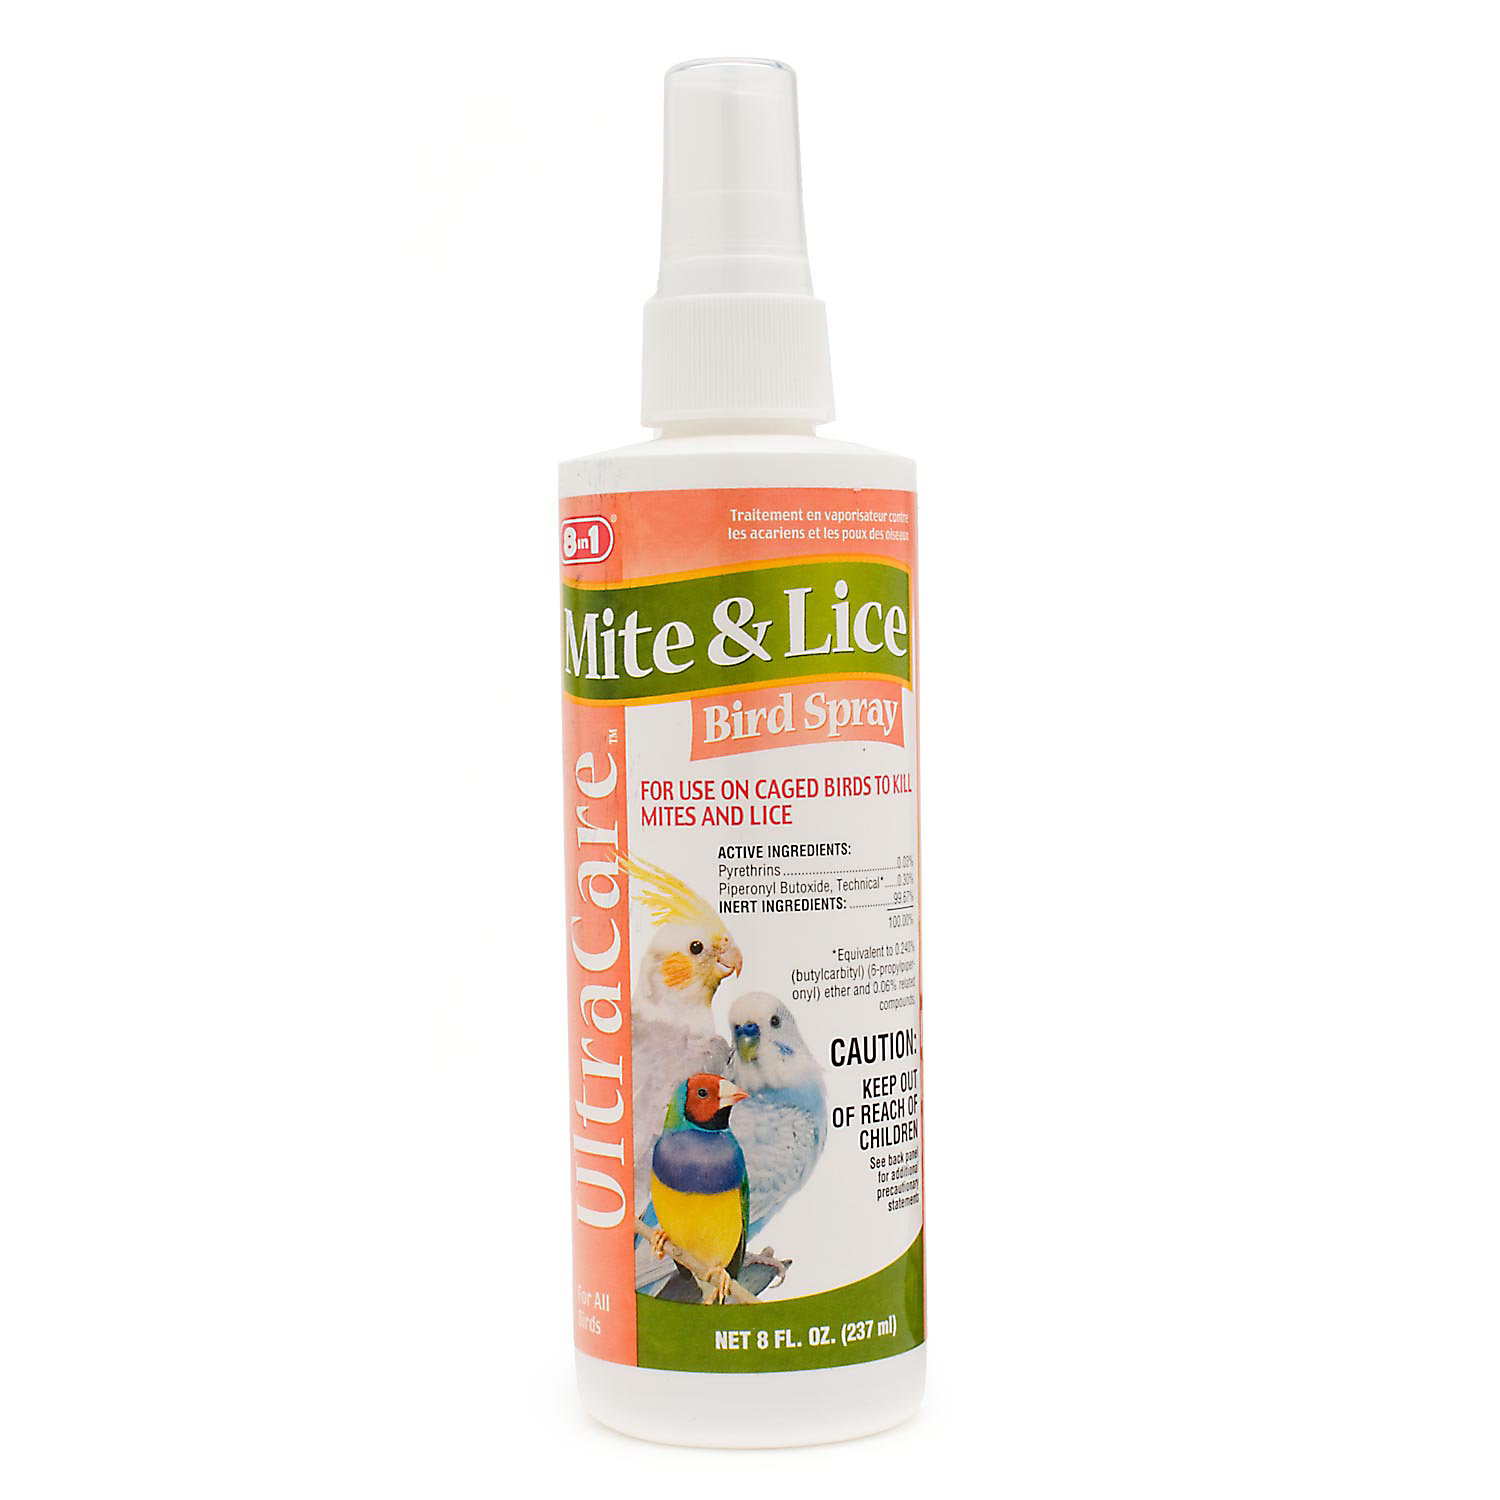 8 In 1 Ultra Care Mite Lice Bird Spray 8 Oz.